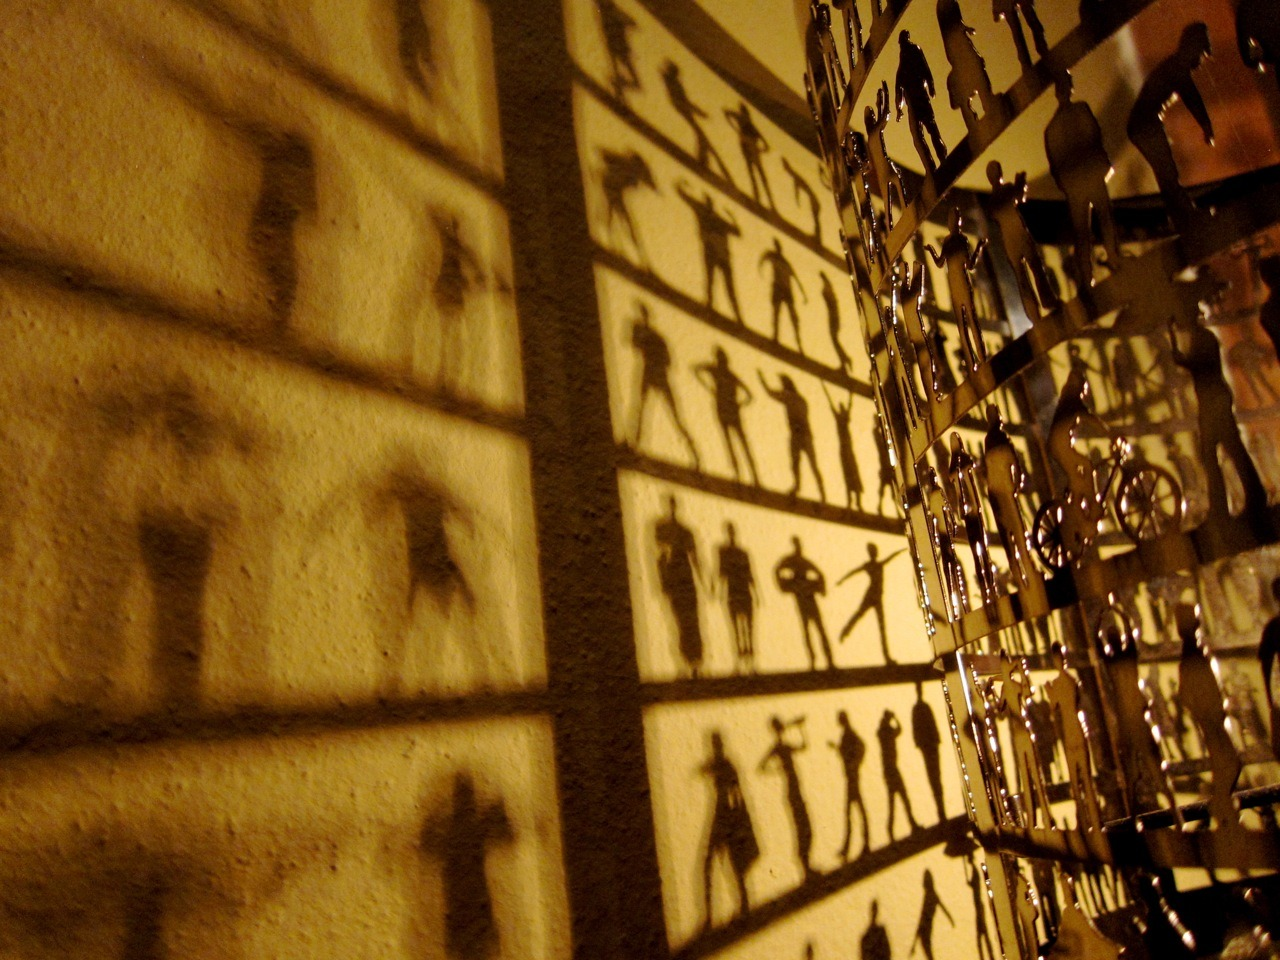 Shadow dancers. Sep 2011.